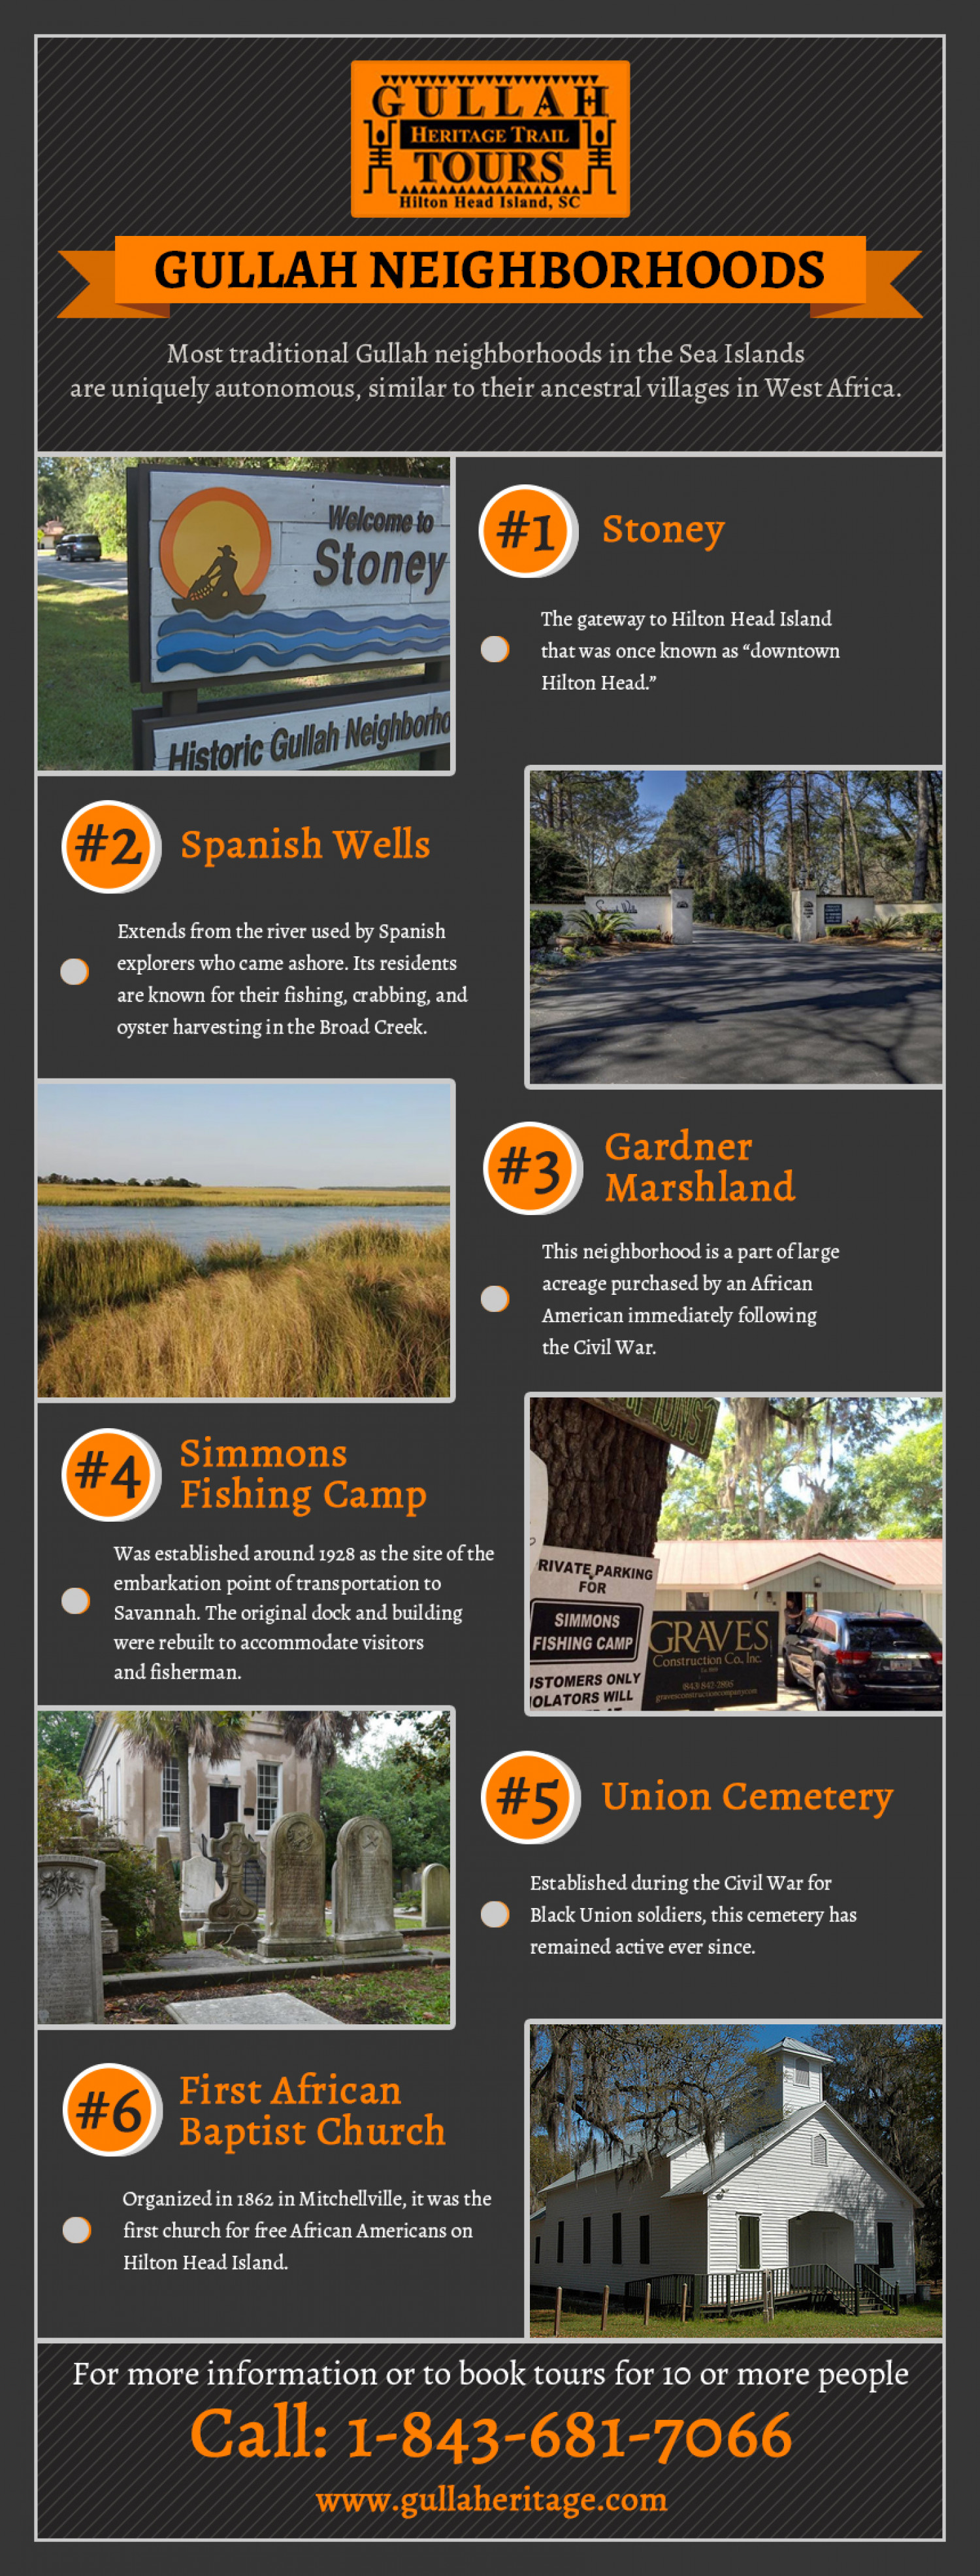 Explore the Extended Neighborhood of Gullah Heritage Infographic